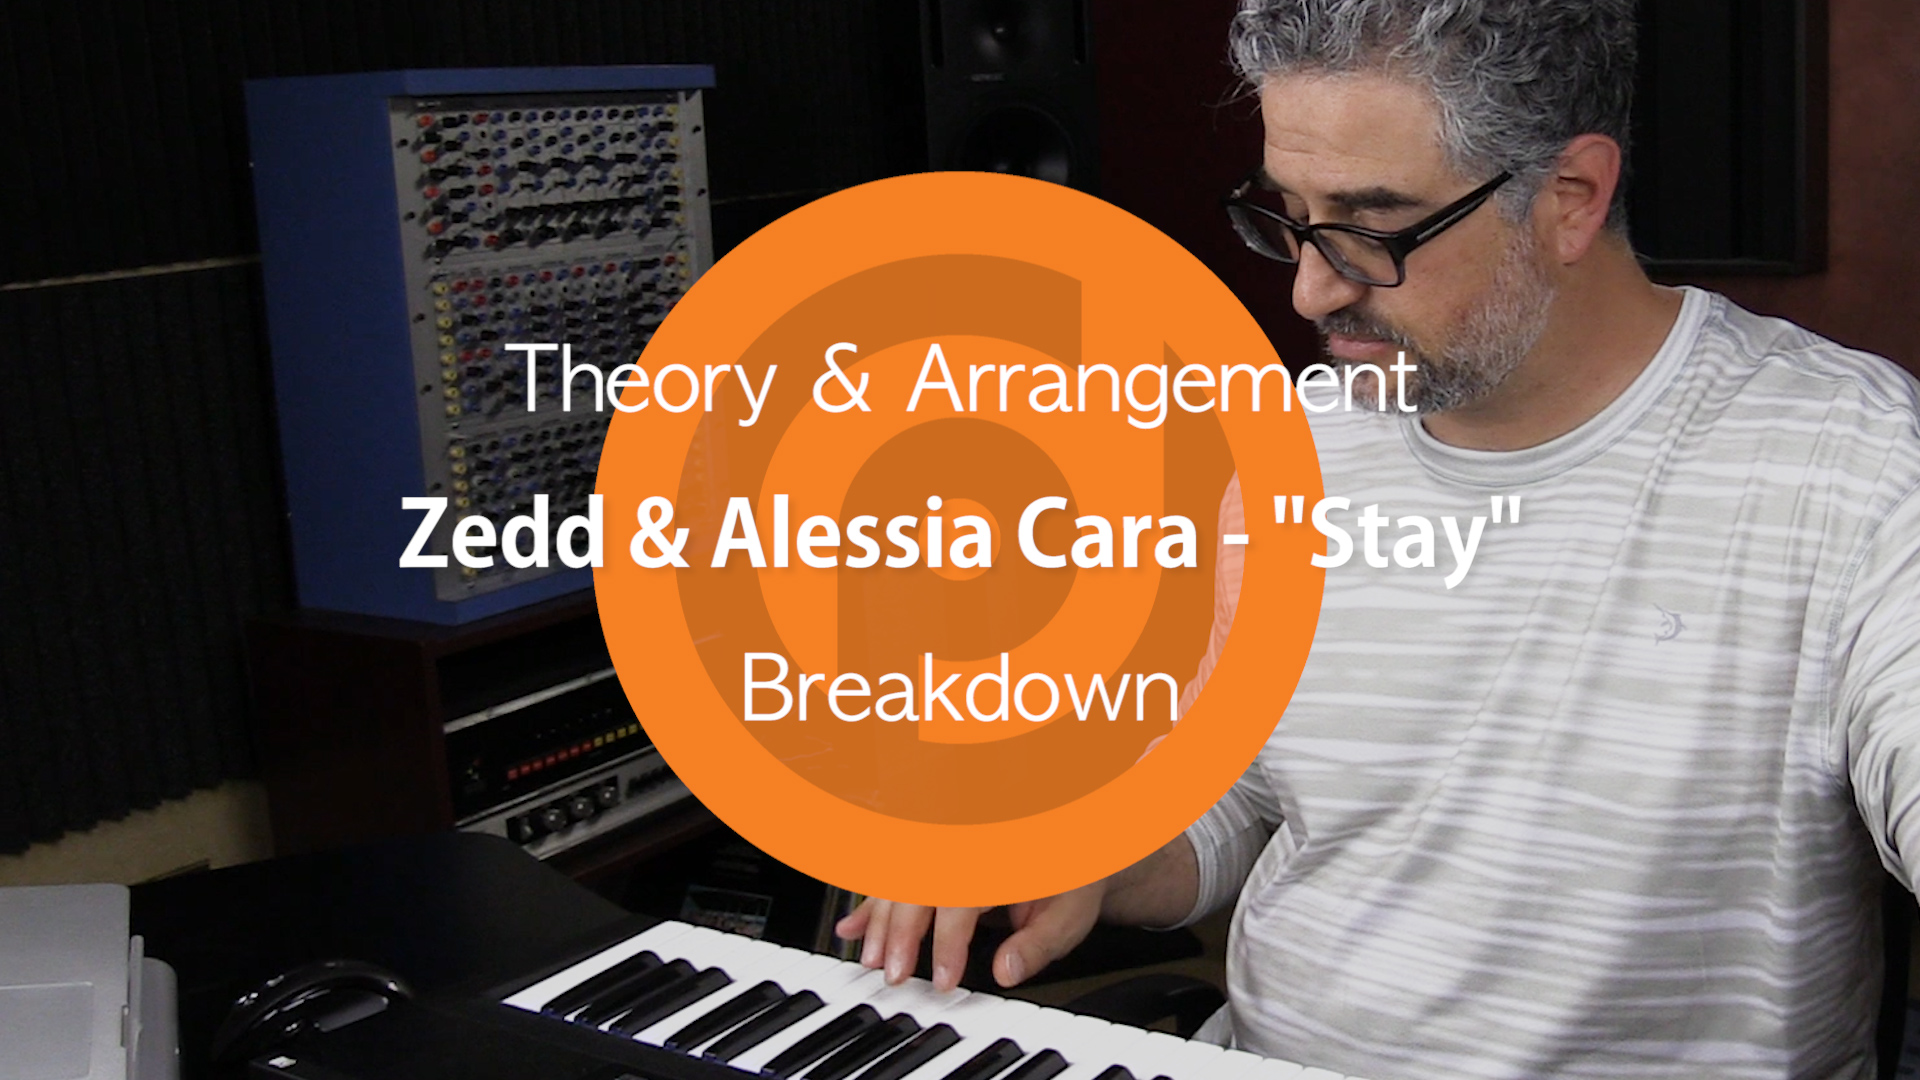 Zedd & Alessia Cara - Stay Breakdown